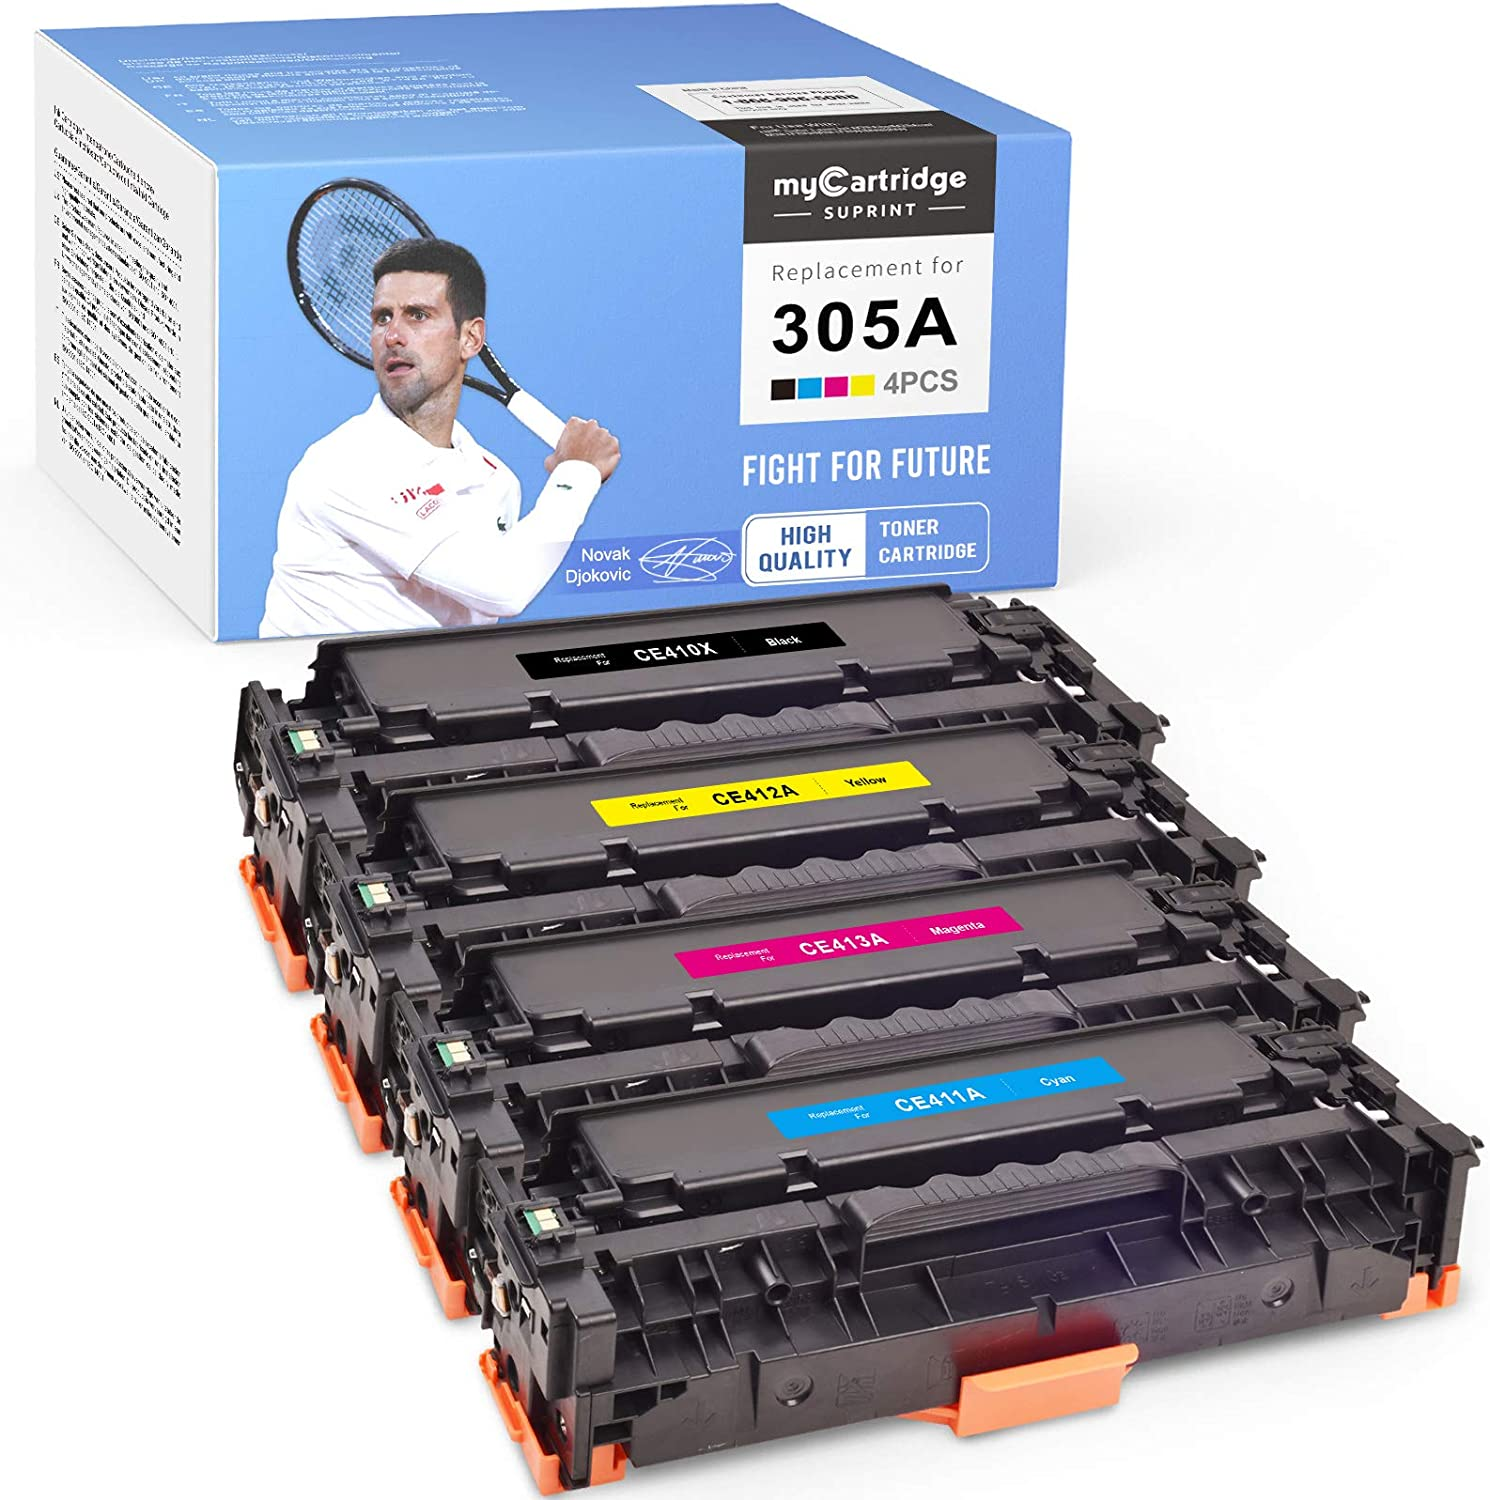 myCartridge SUPRINT Compatible Toner Cartridge Replacement for HP 305A 305X CE410A CE410X use with Laserjet Pro 400 M451dn M451nw M475dn M475dw M451dw M375nw M351A (Black Cyan Magenta Yellow, 4-Pack)